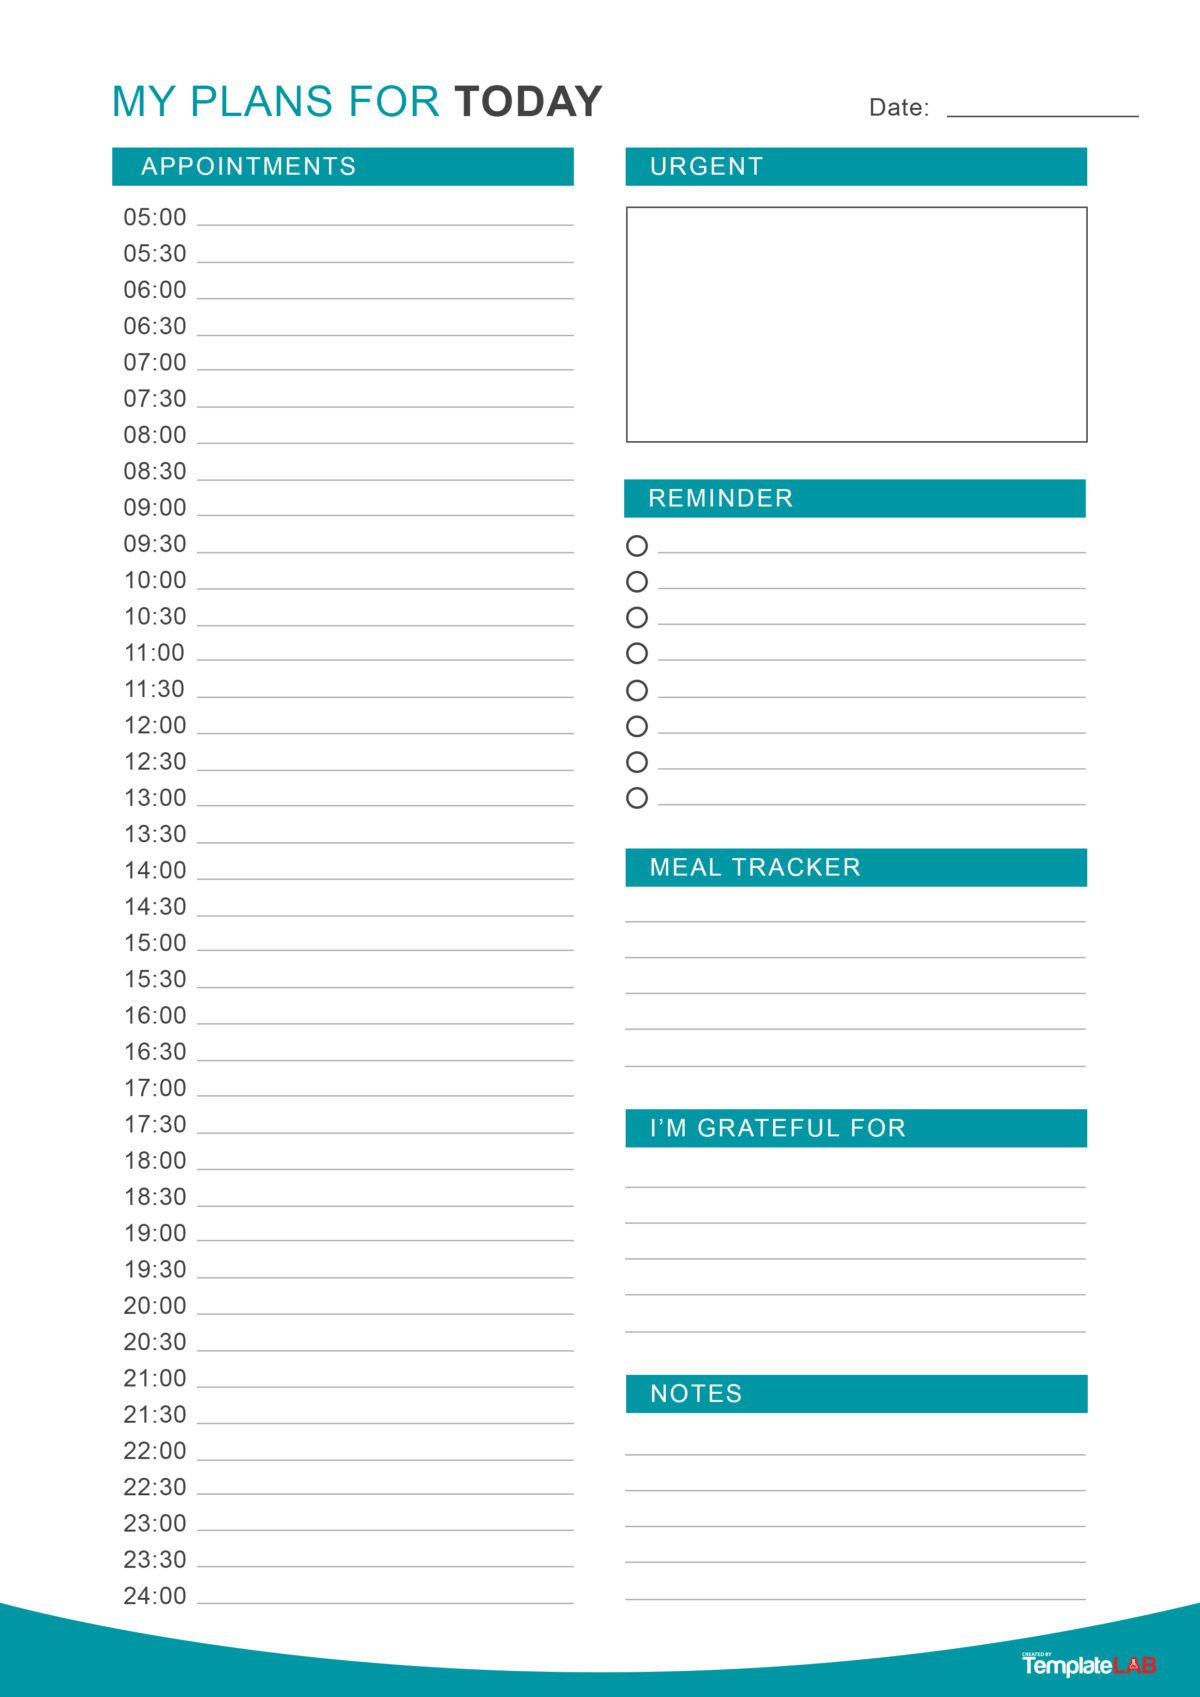 006 Unforgettable Real Estate Daily Planner Template Concept Full